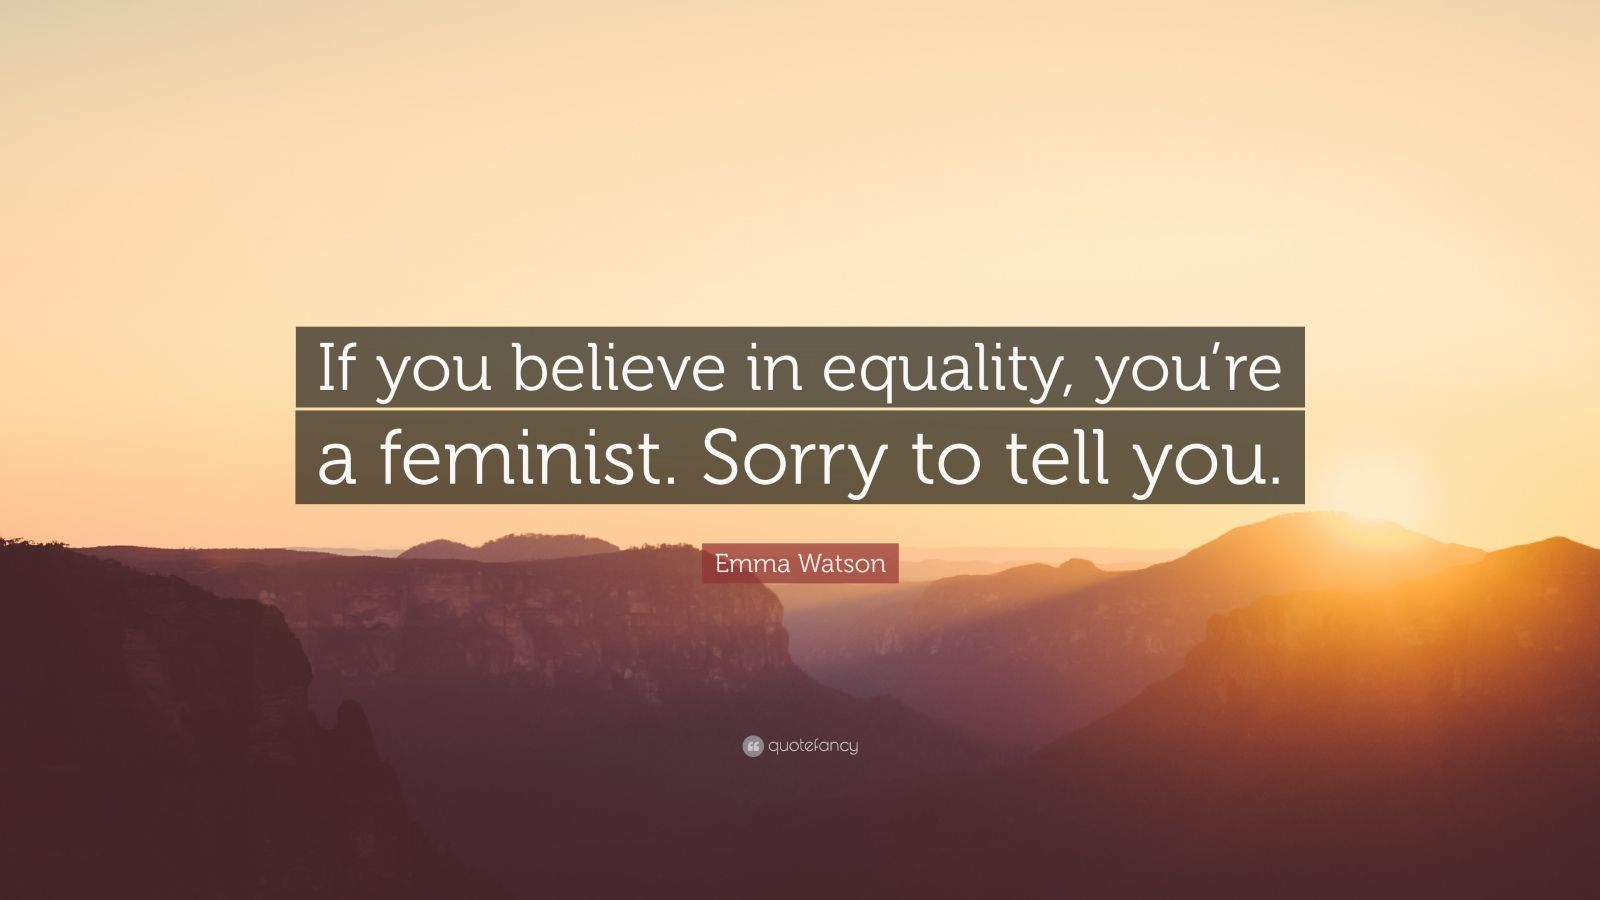 Theodore Roosevelt Wallpaper Quote Emma Watson Quote If You Believe In Equality You Re A